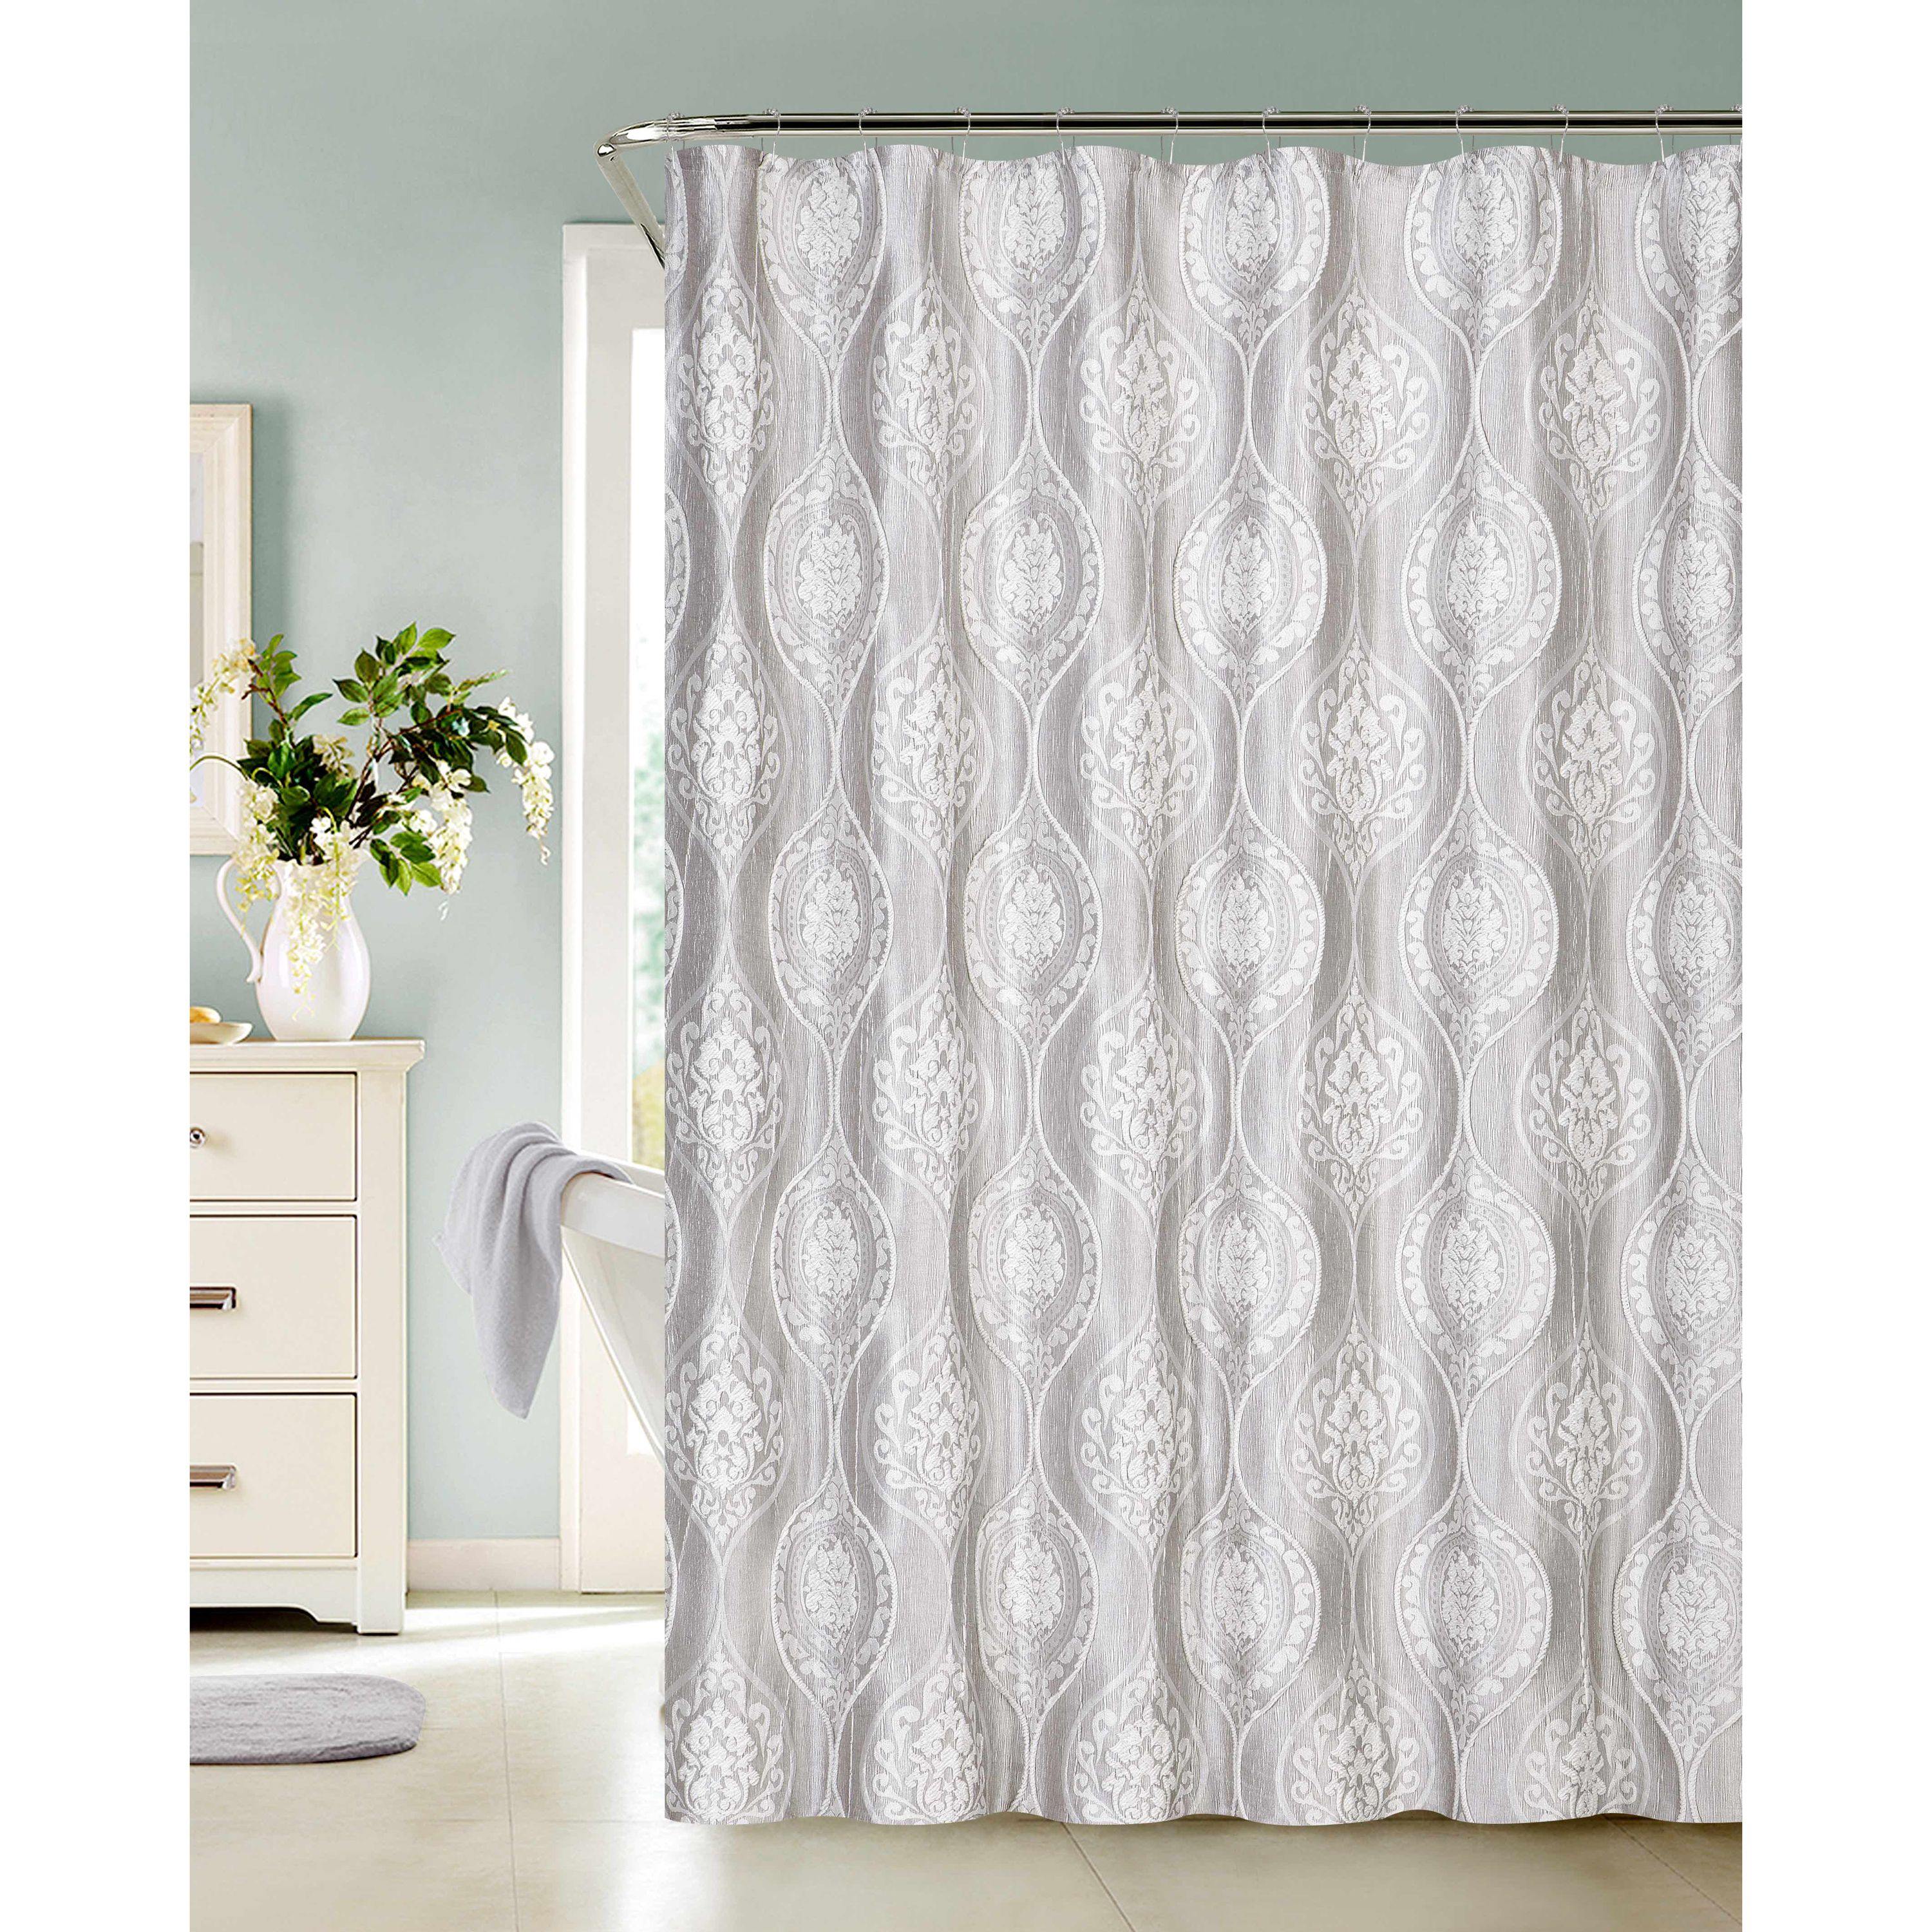 Dainty Home Monaco Shower Curtain, Silver